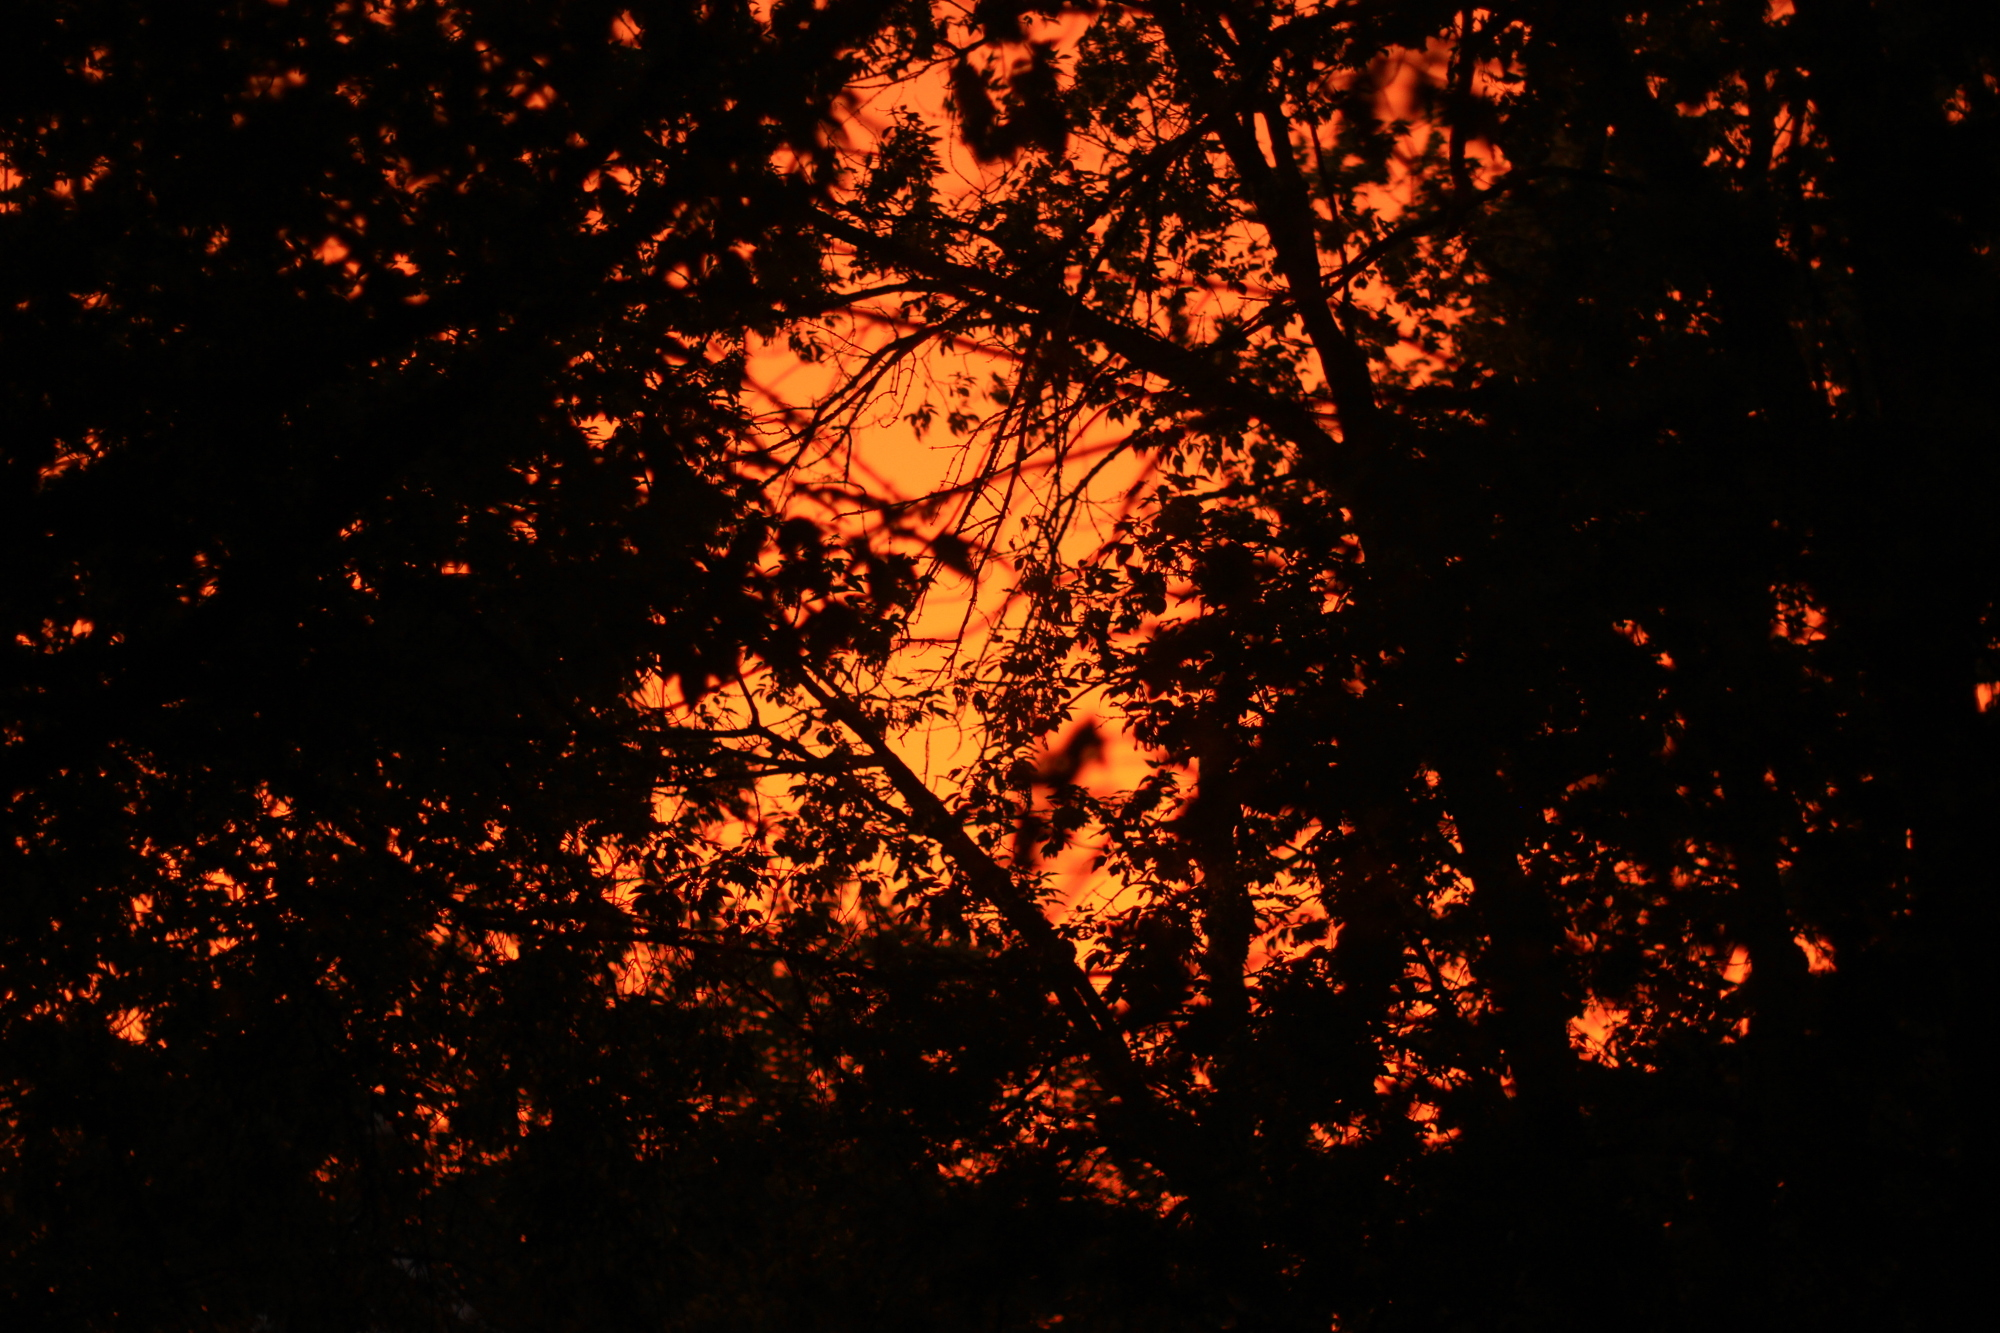 Orange sky through the trees